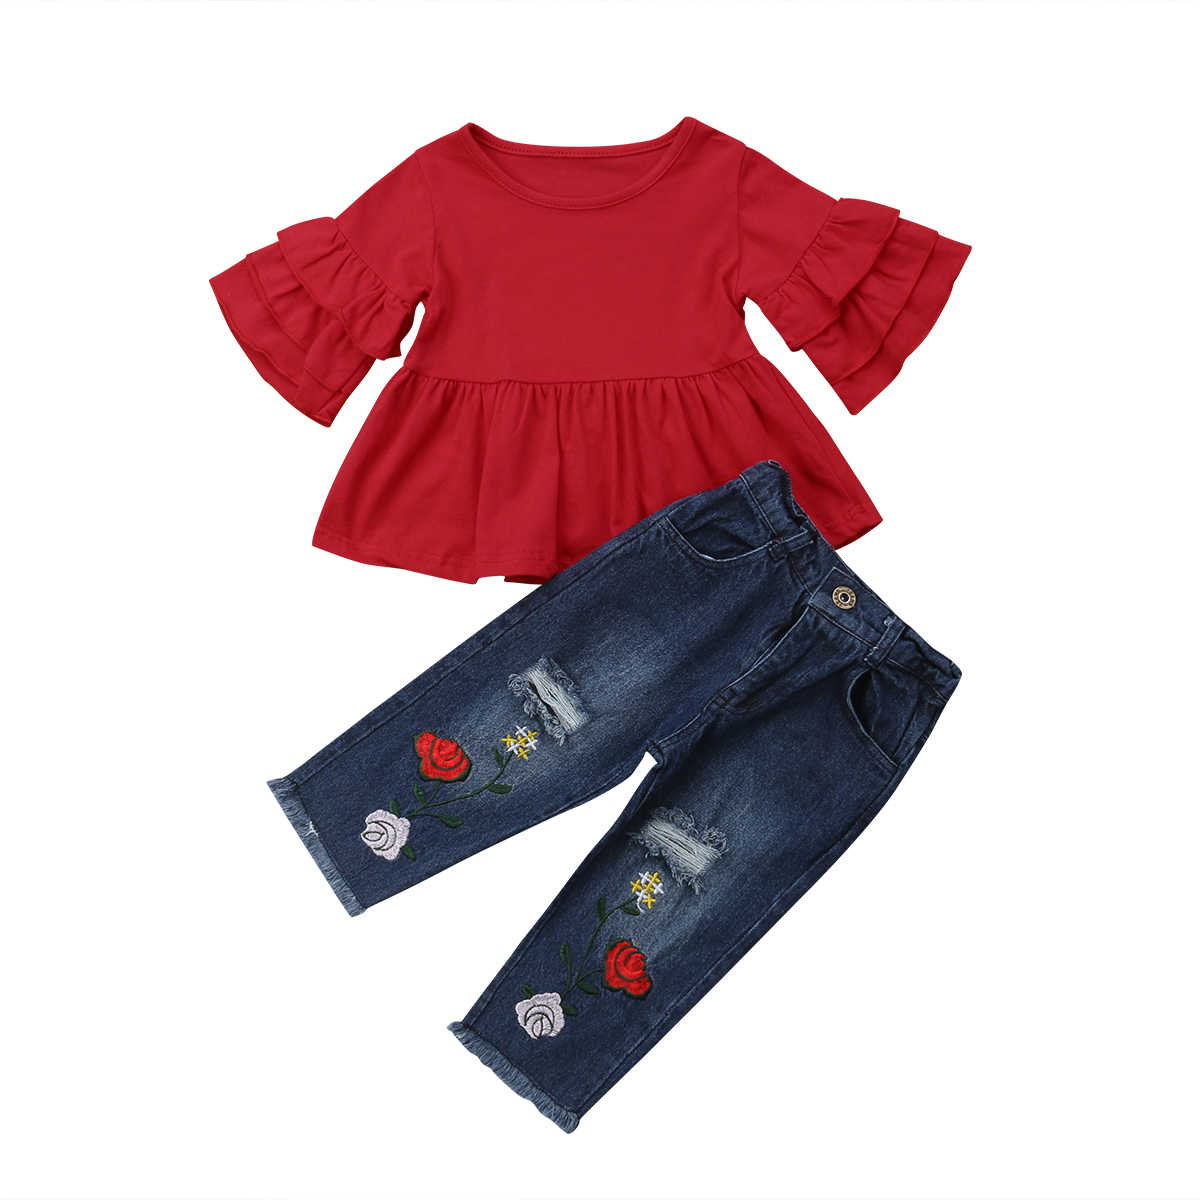 74e9e244 Autumn New Kid Baby Girls 2pcs Clothing Set Red Long Sleeves T shirts  Tunic+Floral